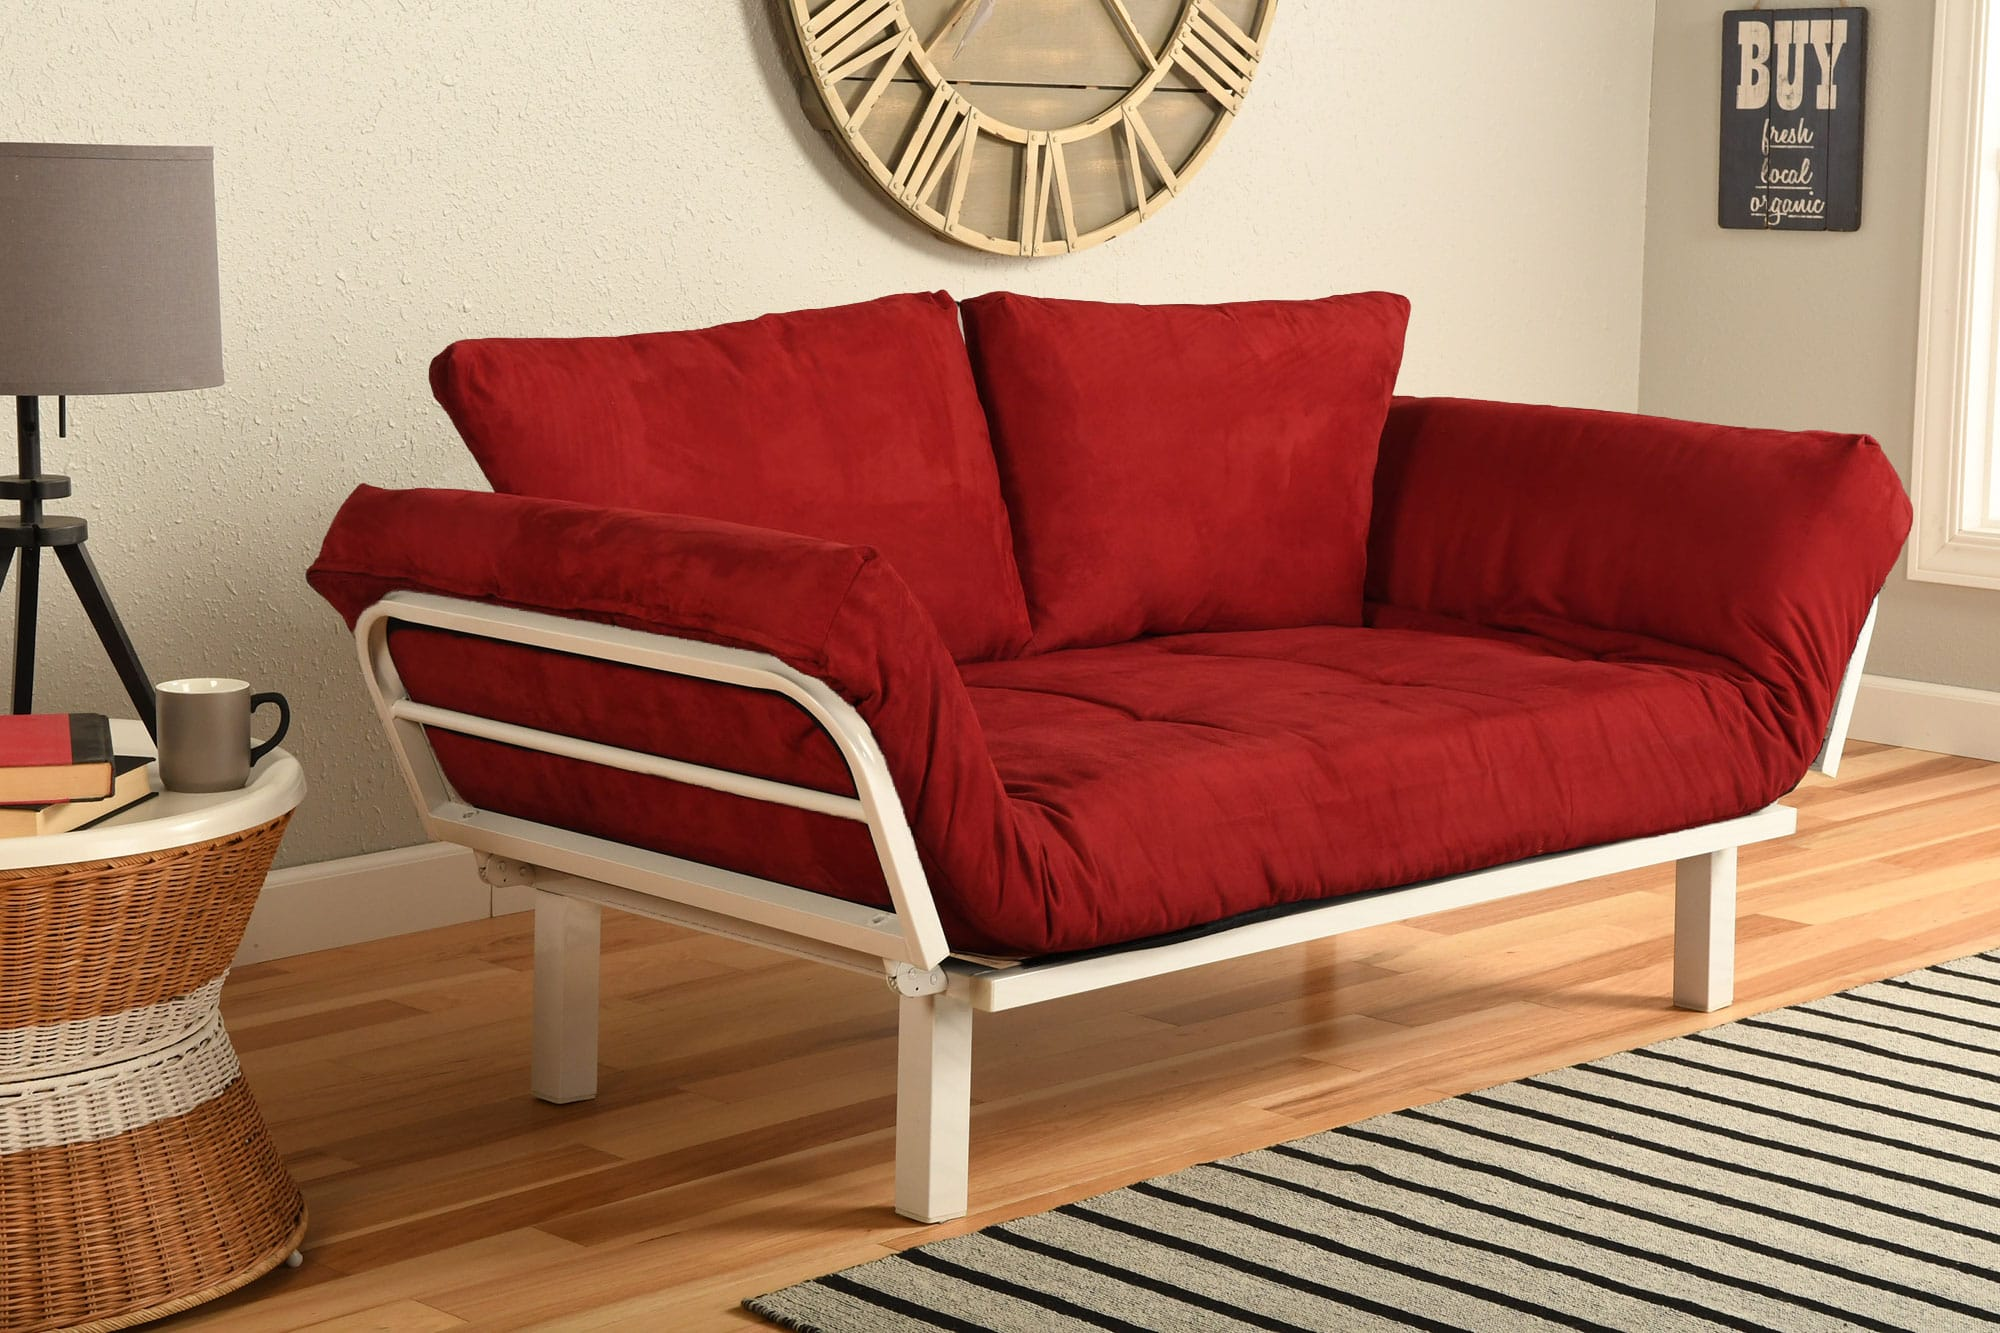 Spacely Futon Daybed/Lounger White with Mattress Suede Red by Kodiak